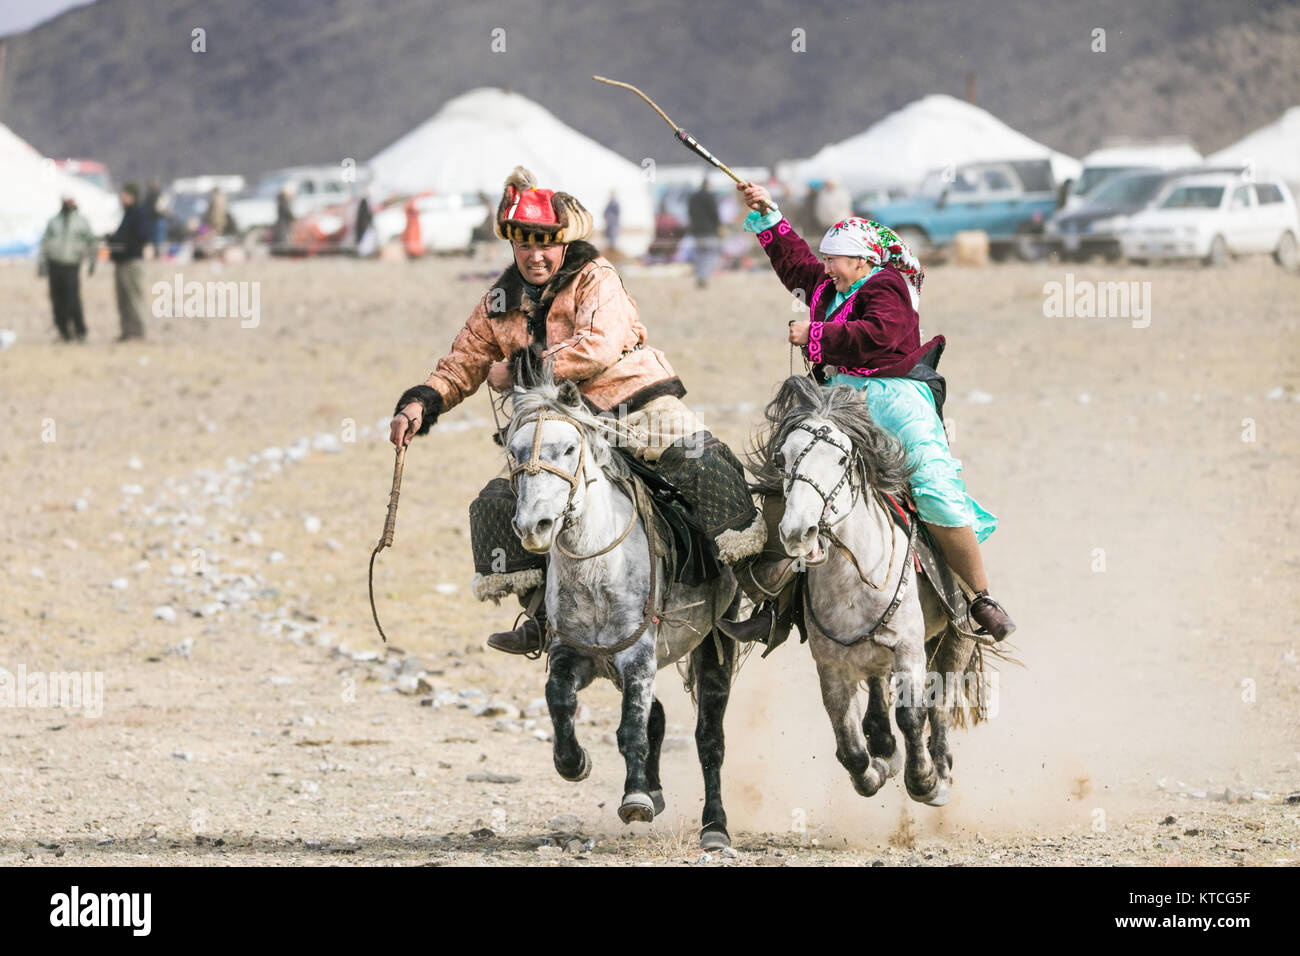 Traditional Kazakh equestrian sport and courting game - Stock Image